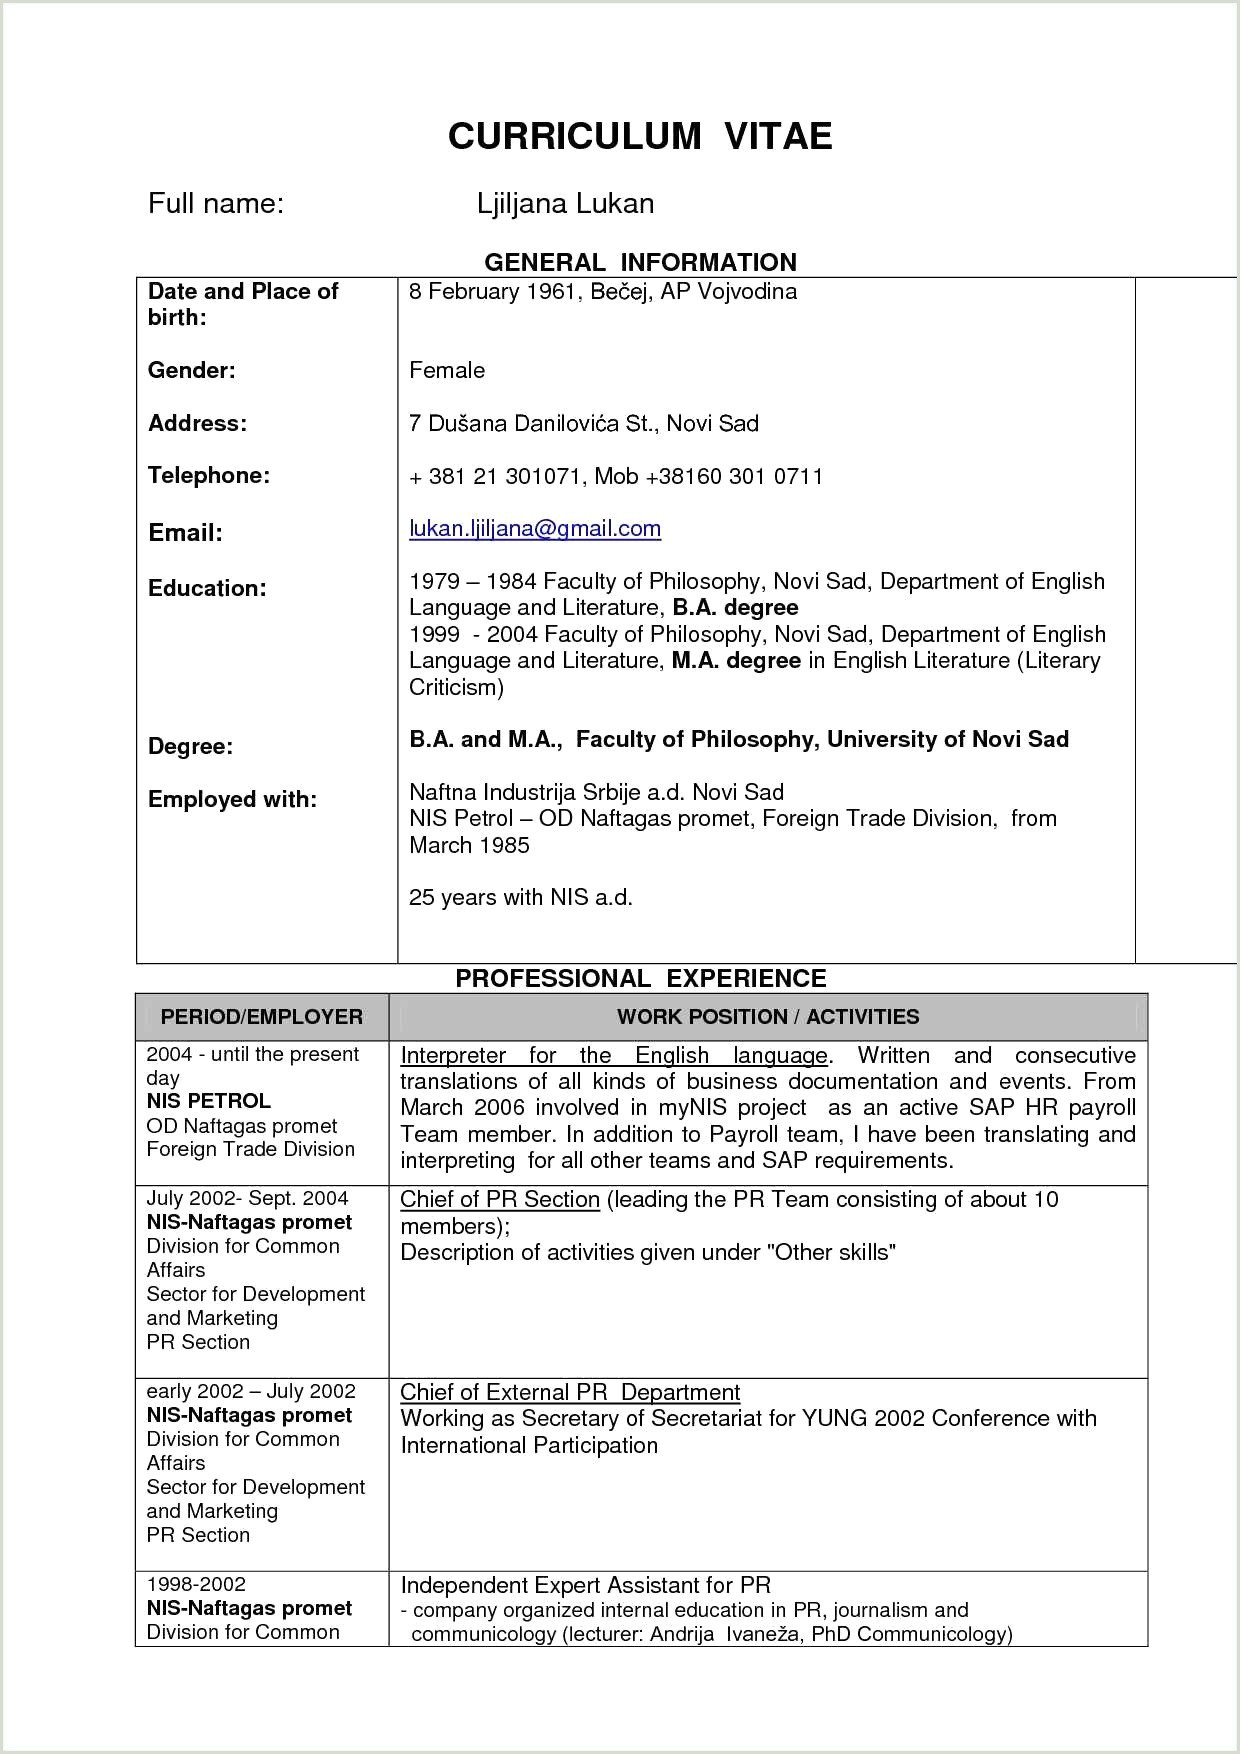 Fresher Resume format Download In Ms Word Free Download Simple Resume format for Freshers Free 13 Resume Sample for